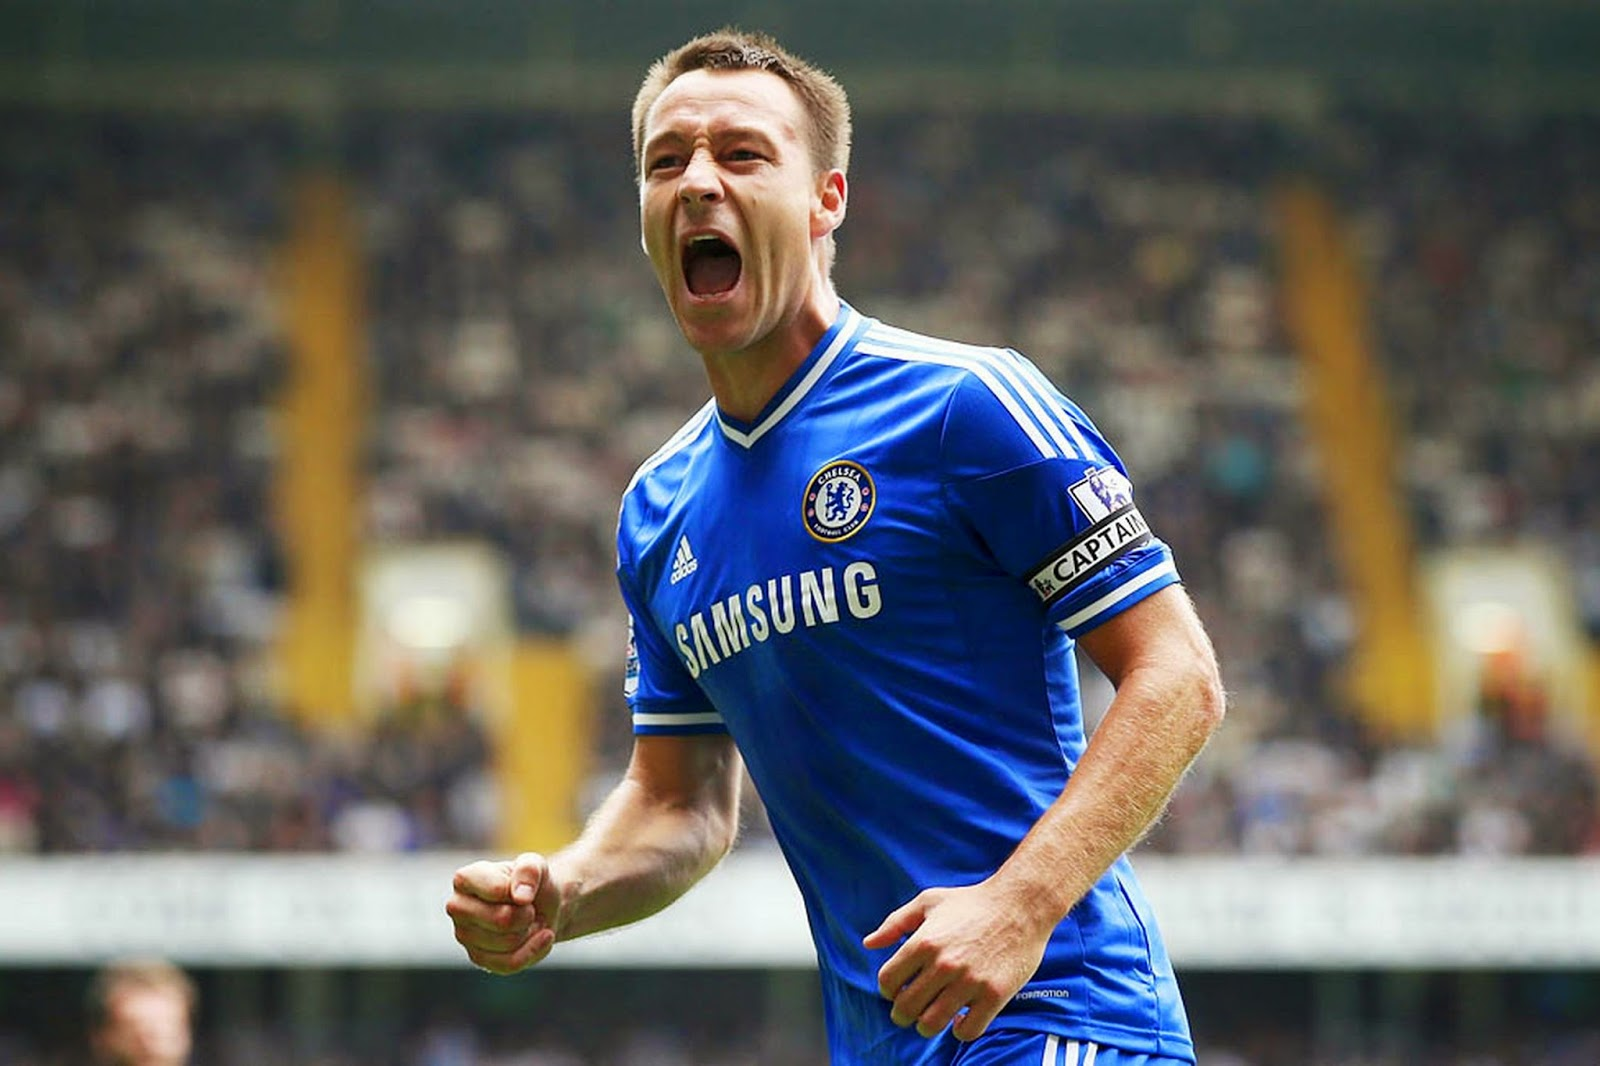 aa2f03cb626d John Terry started his career at Chelsea in 1997 and he has been a main  staple of Chelsea defense since. He has 574 appearances for the club while  scoring ...